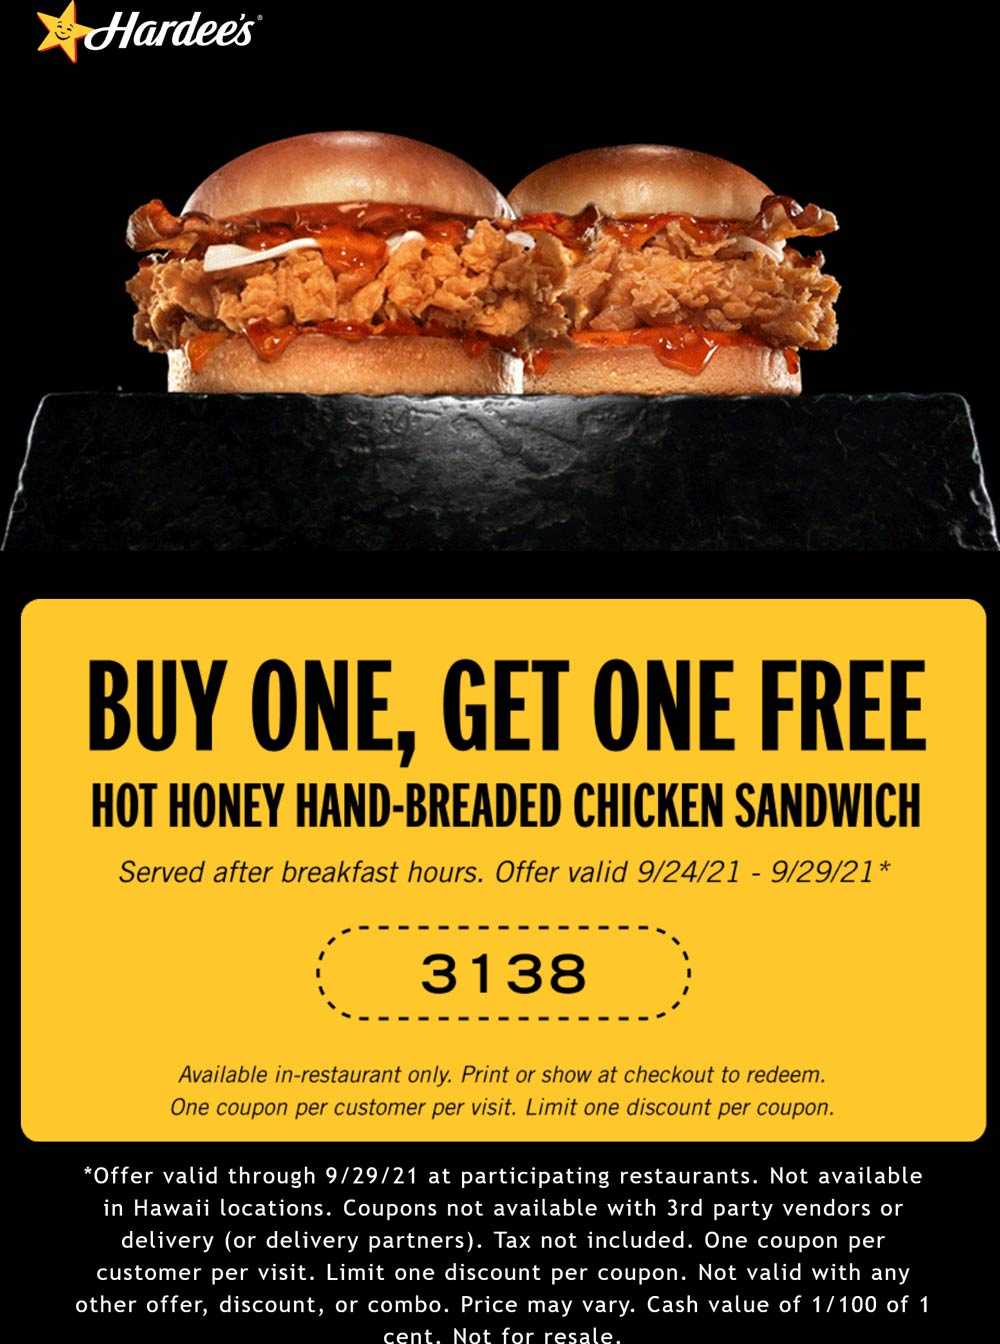 Hardees restaurants Coupon  Second chicken sandwich free at Hardees #hardees